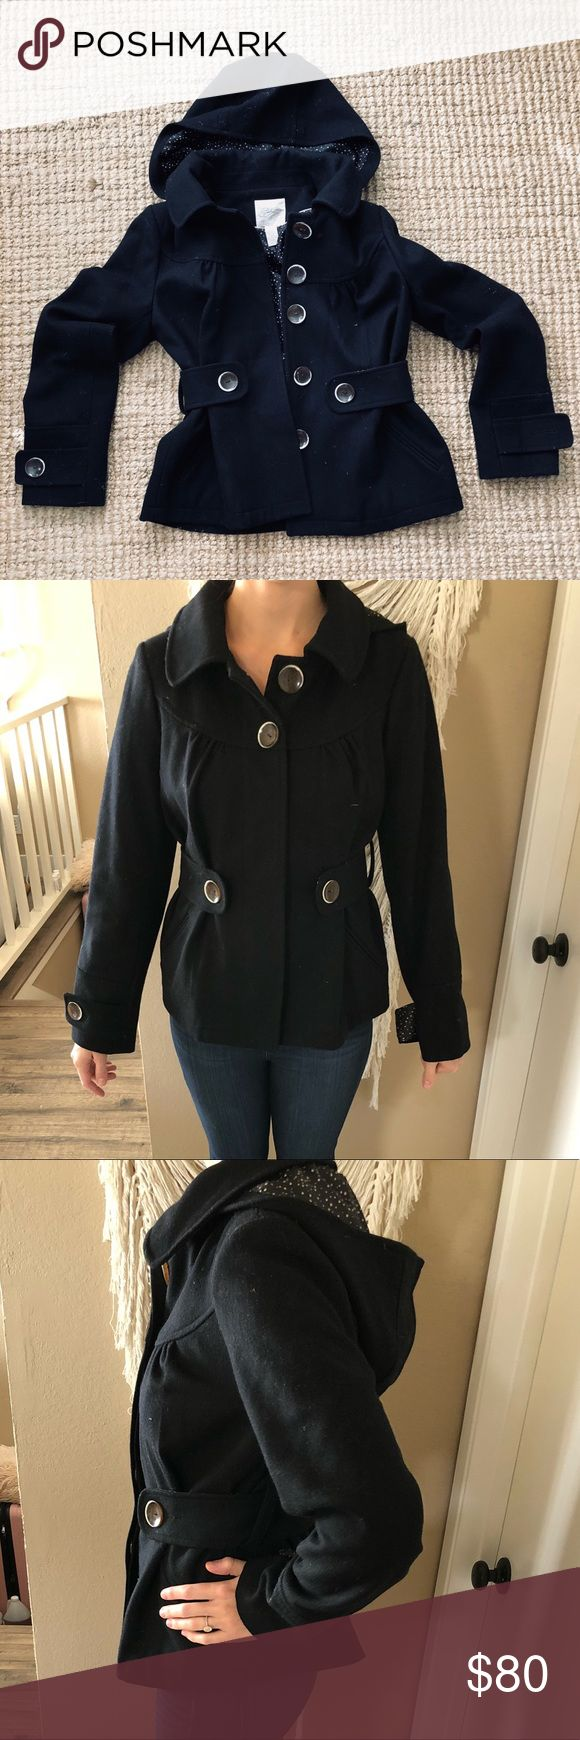 Anthropologie Black Pea Coat Black pea coat with buttons (missing one button on left arm) Anthropologie Jackets & Coats Pea Coats